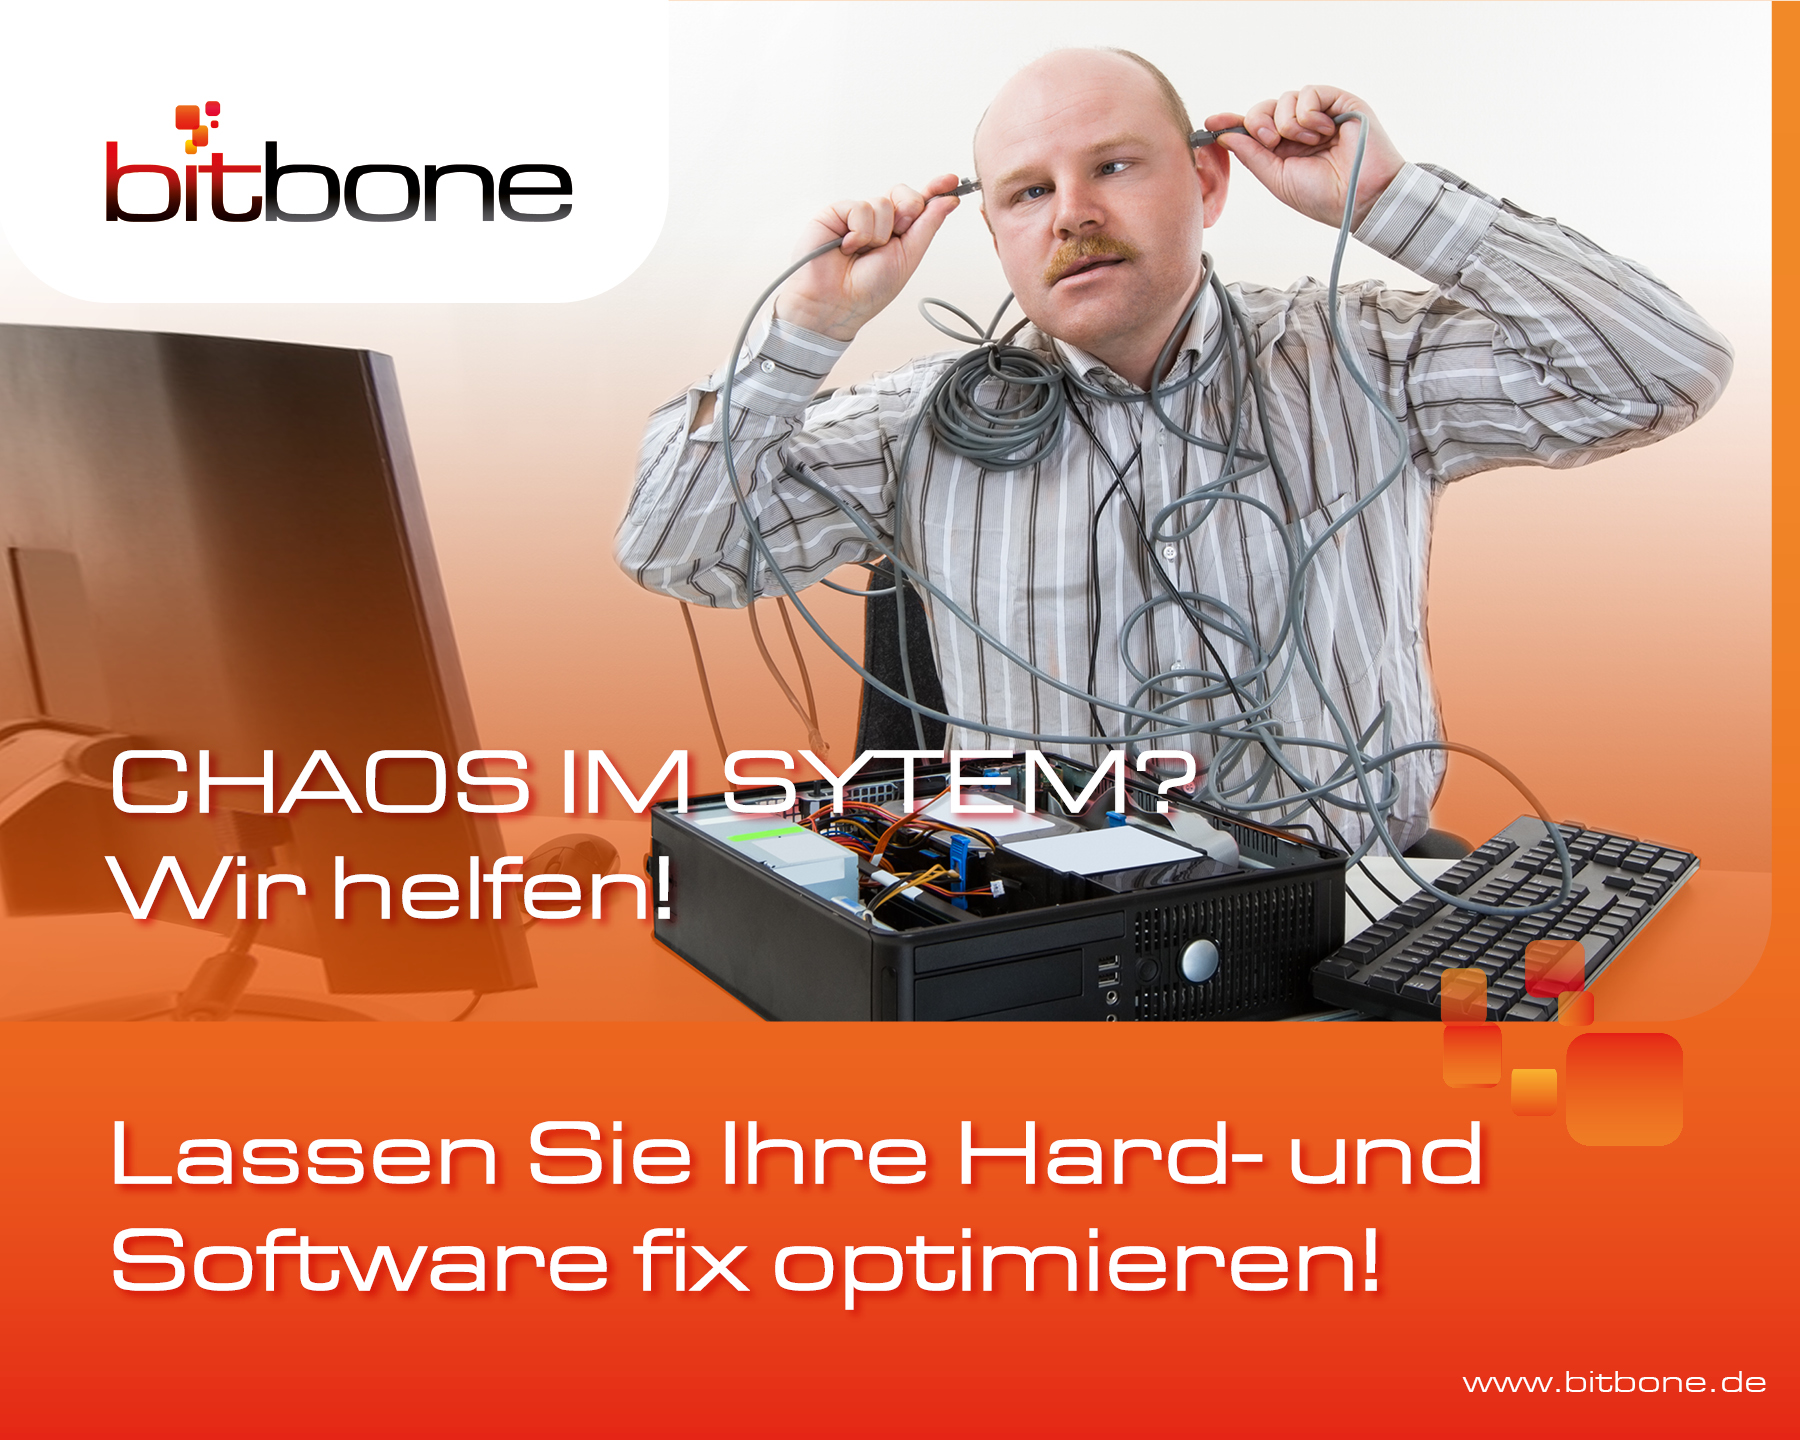 Picture with man and IT hardware. Text says: Have your hardware and software optimized!